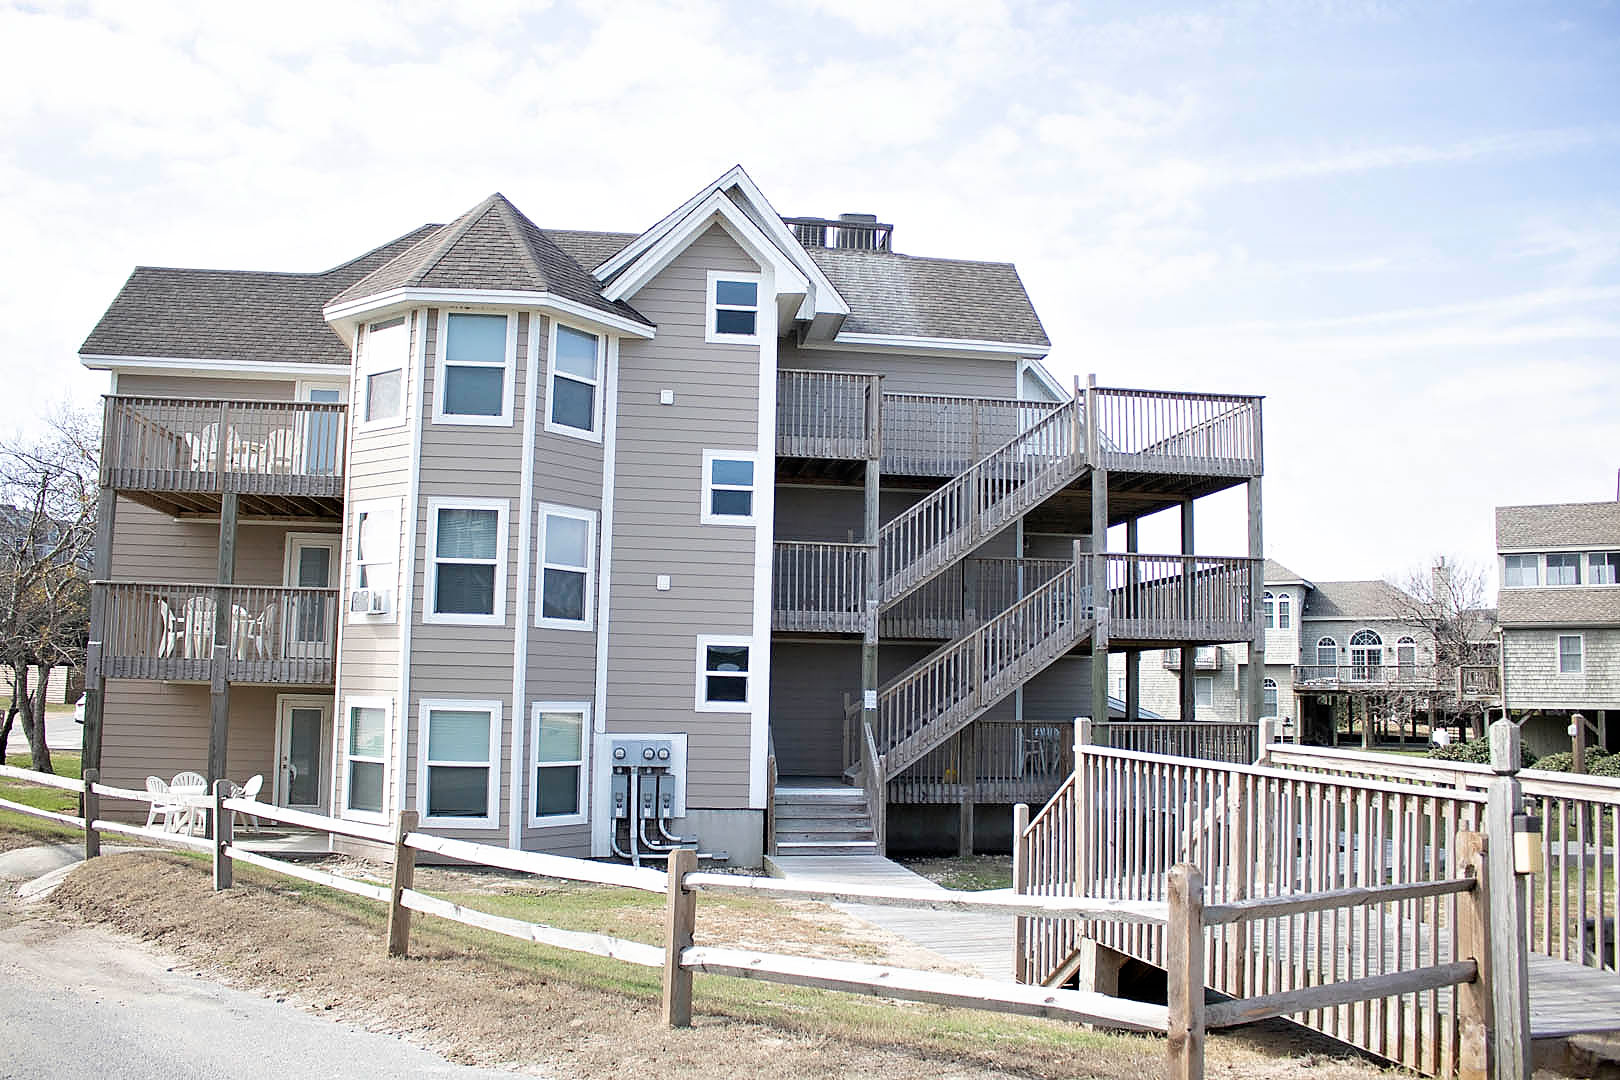 An airy patio deck at VRI's Barrier Island Station in North Carolina.